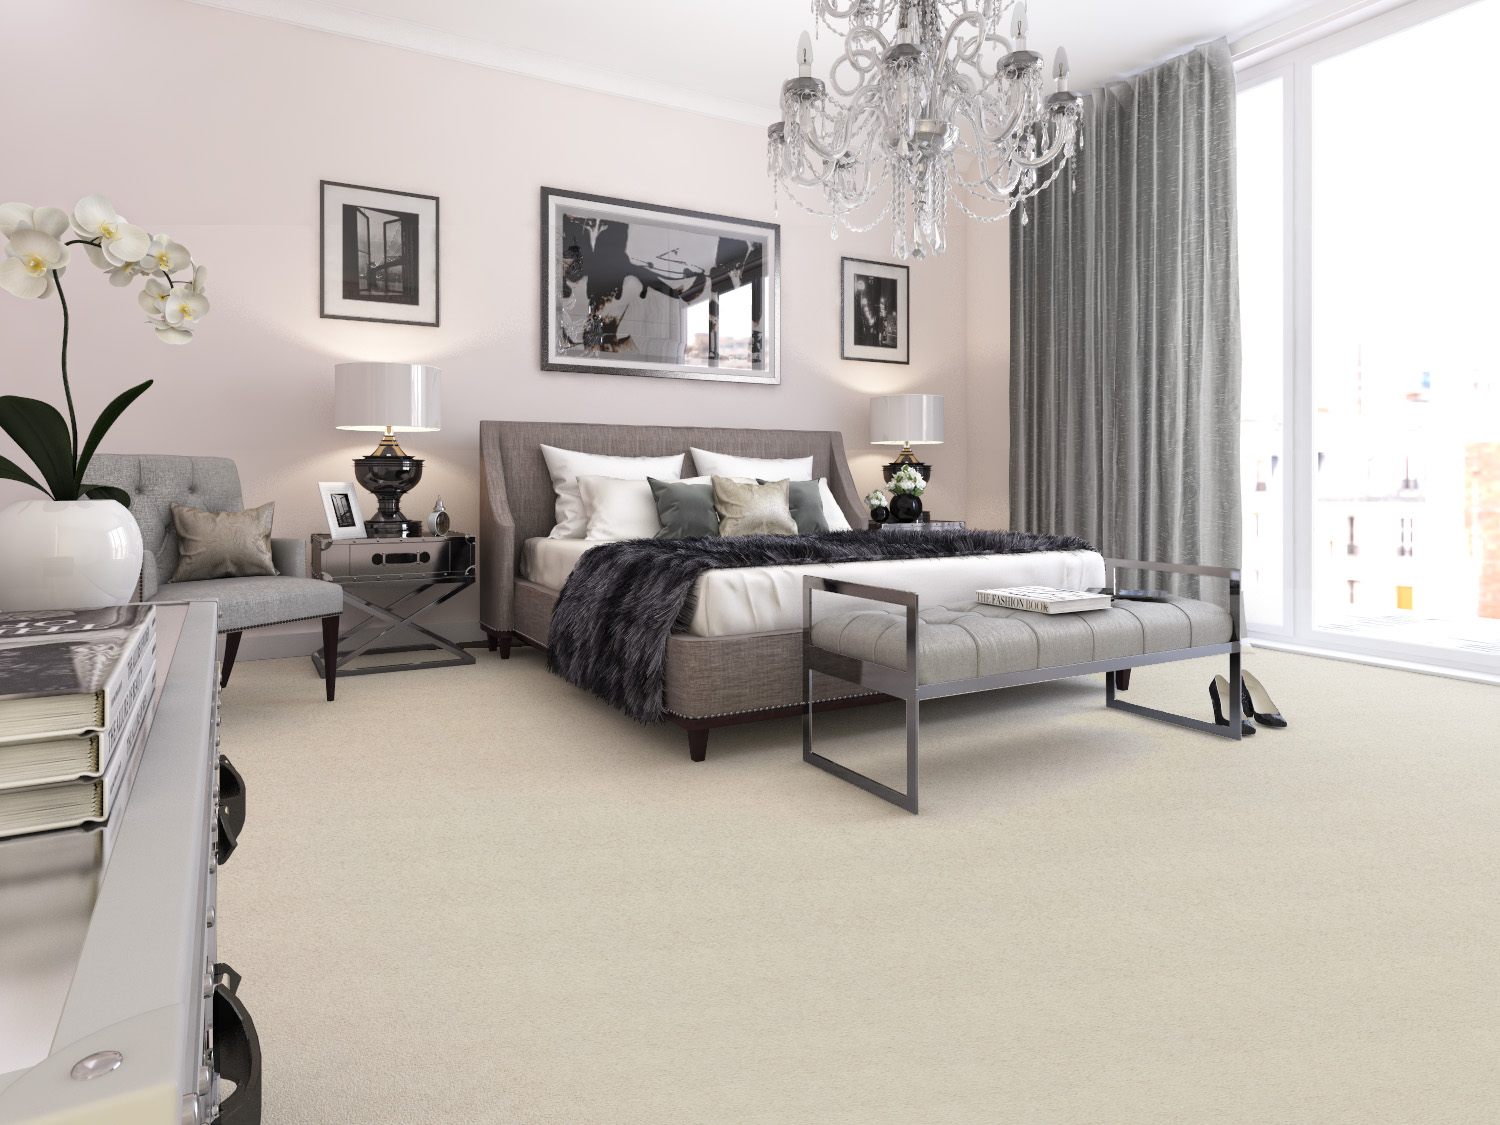 Axminster Carpets Devonia Plains in Cream Tea - great for modern spaces